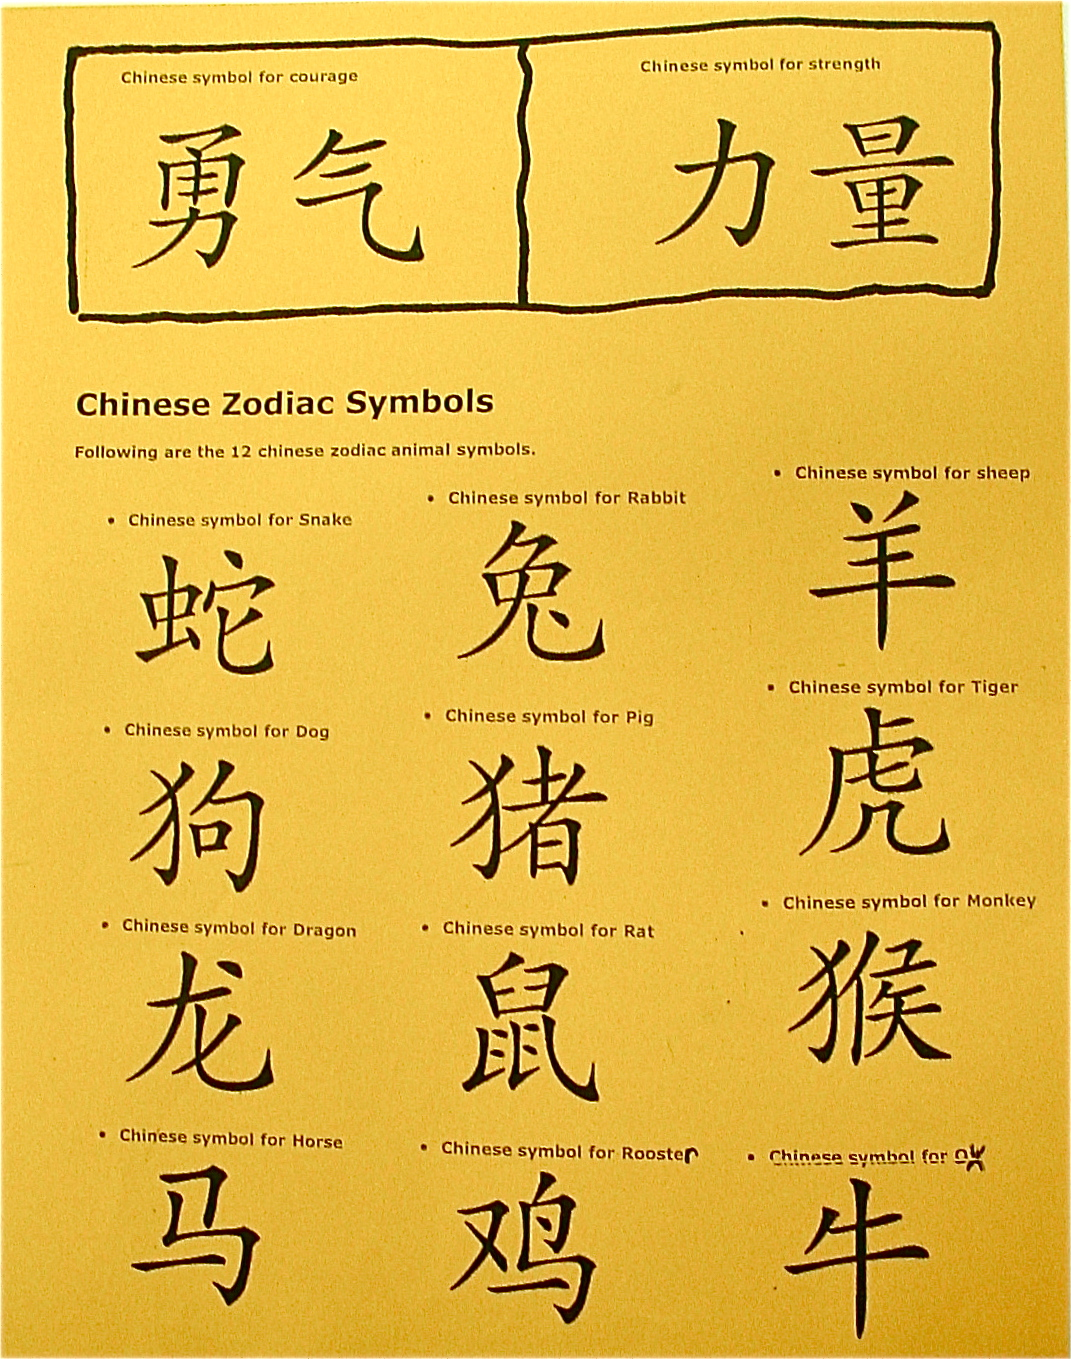 Chinese Writing Name Custom Paper Writing Service Zcessayxduqfra